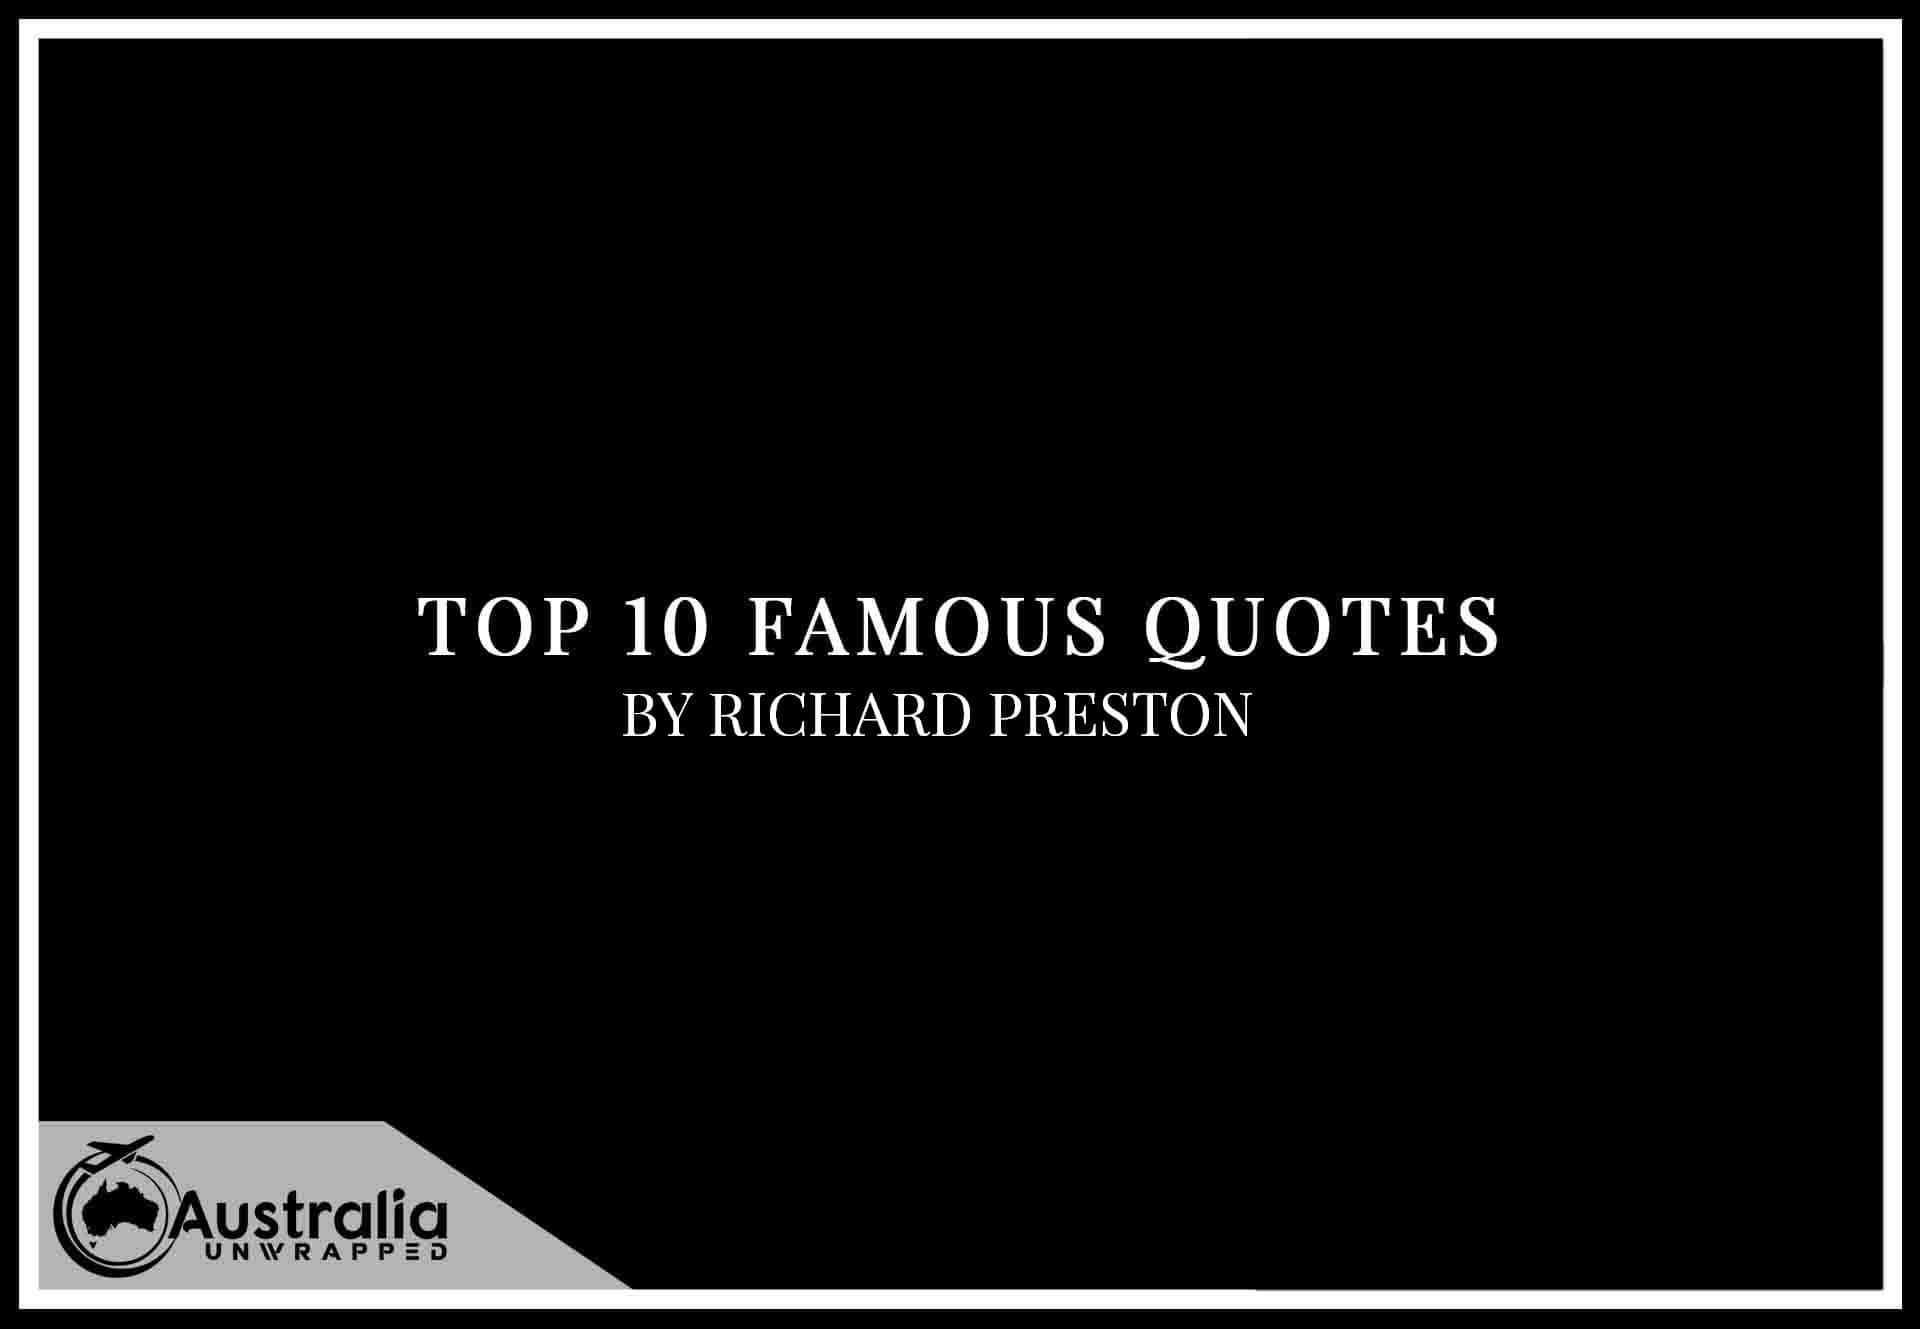 Top 10 Famous Quotes by Author Richard Preston